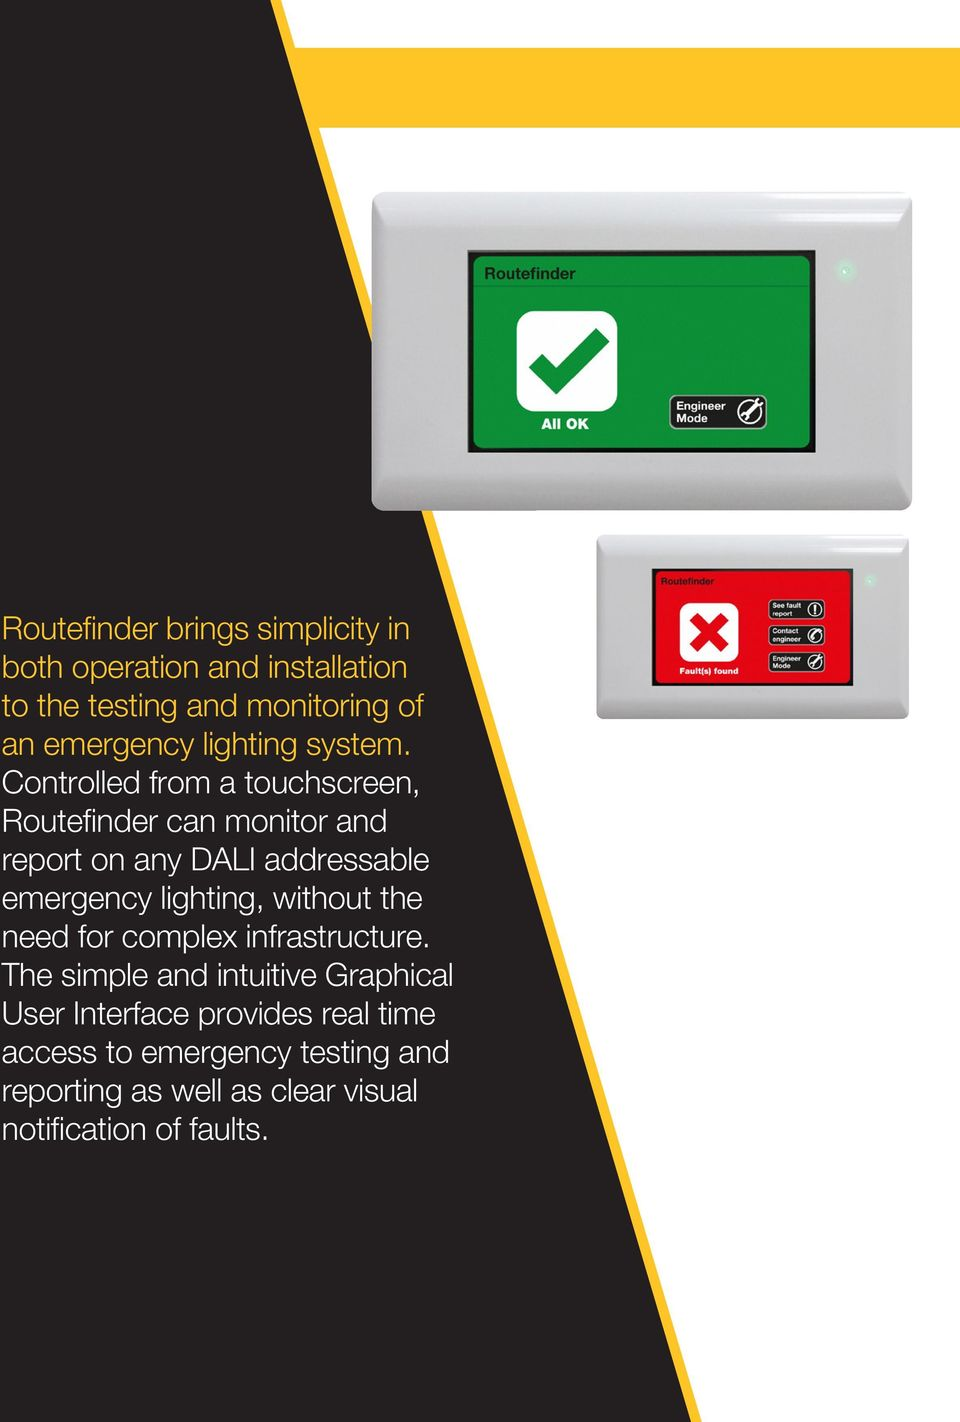 Controlled from a touchscreen, Routefinder can monitor and report on any DALI addressable emergency lighting,